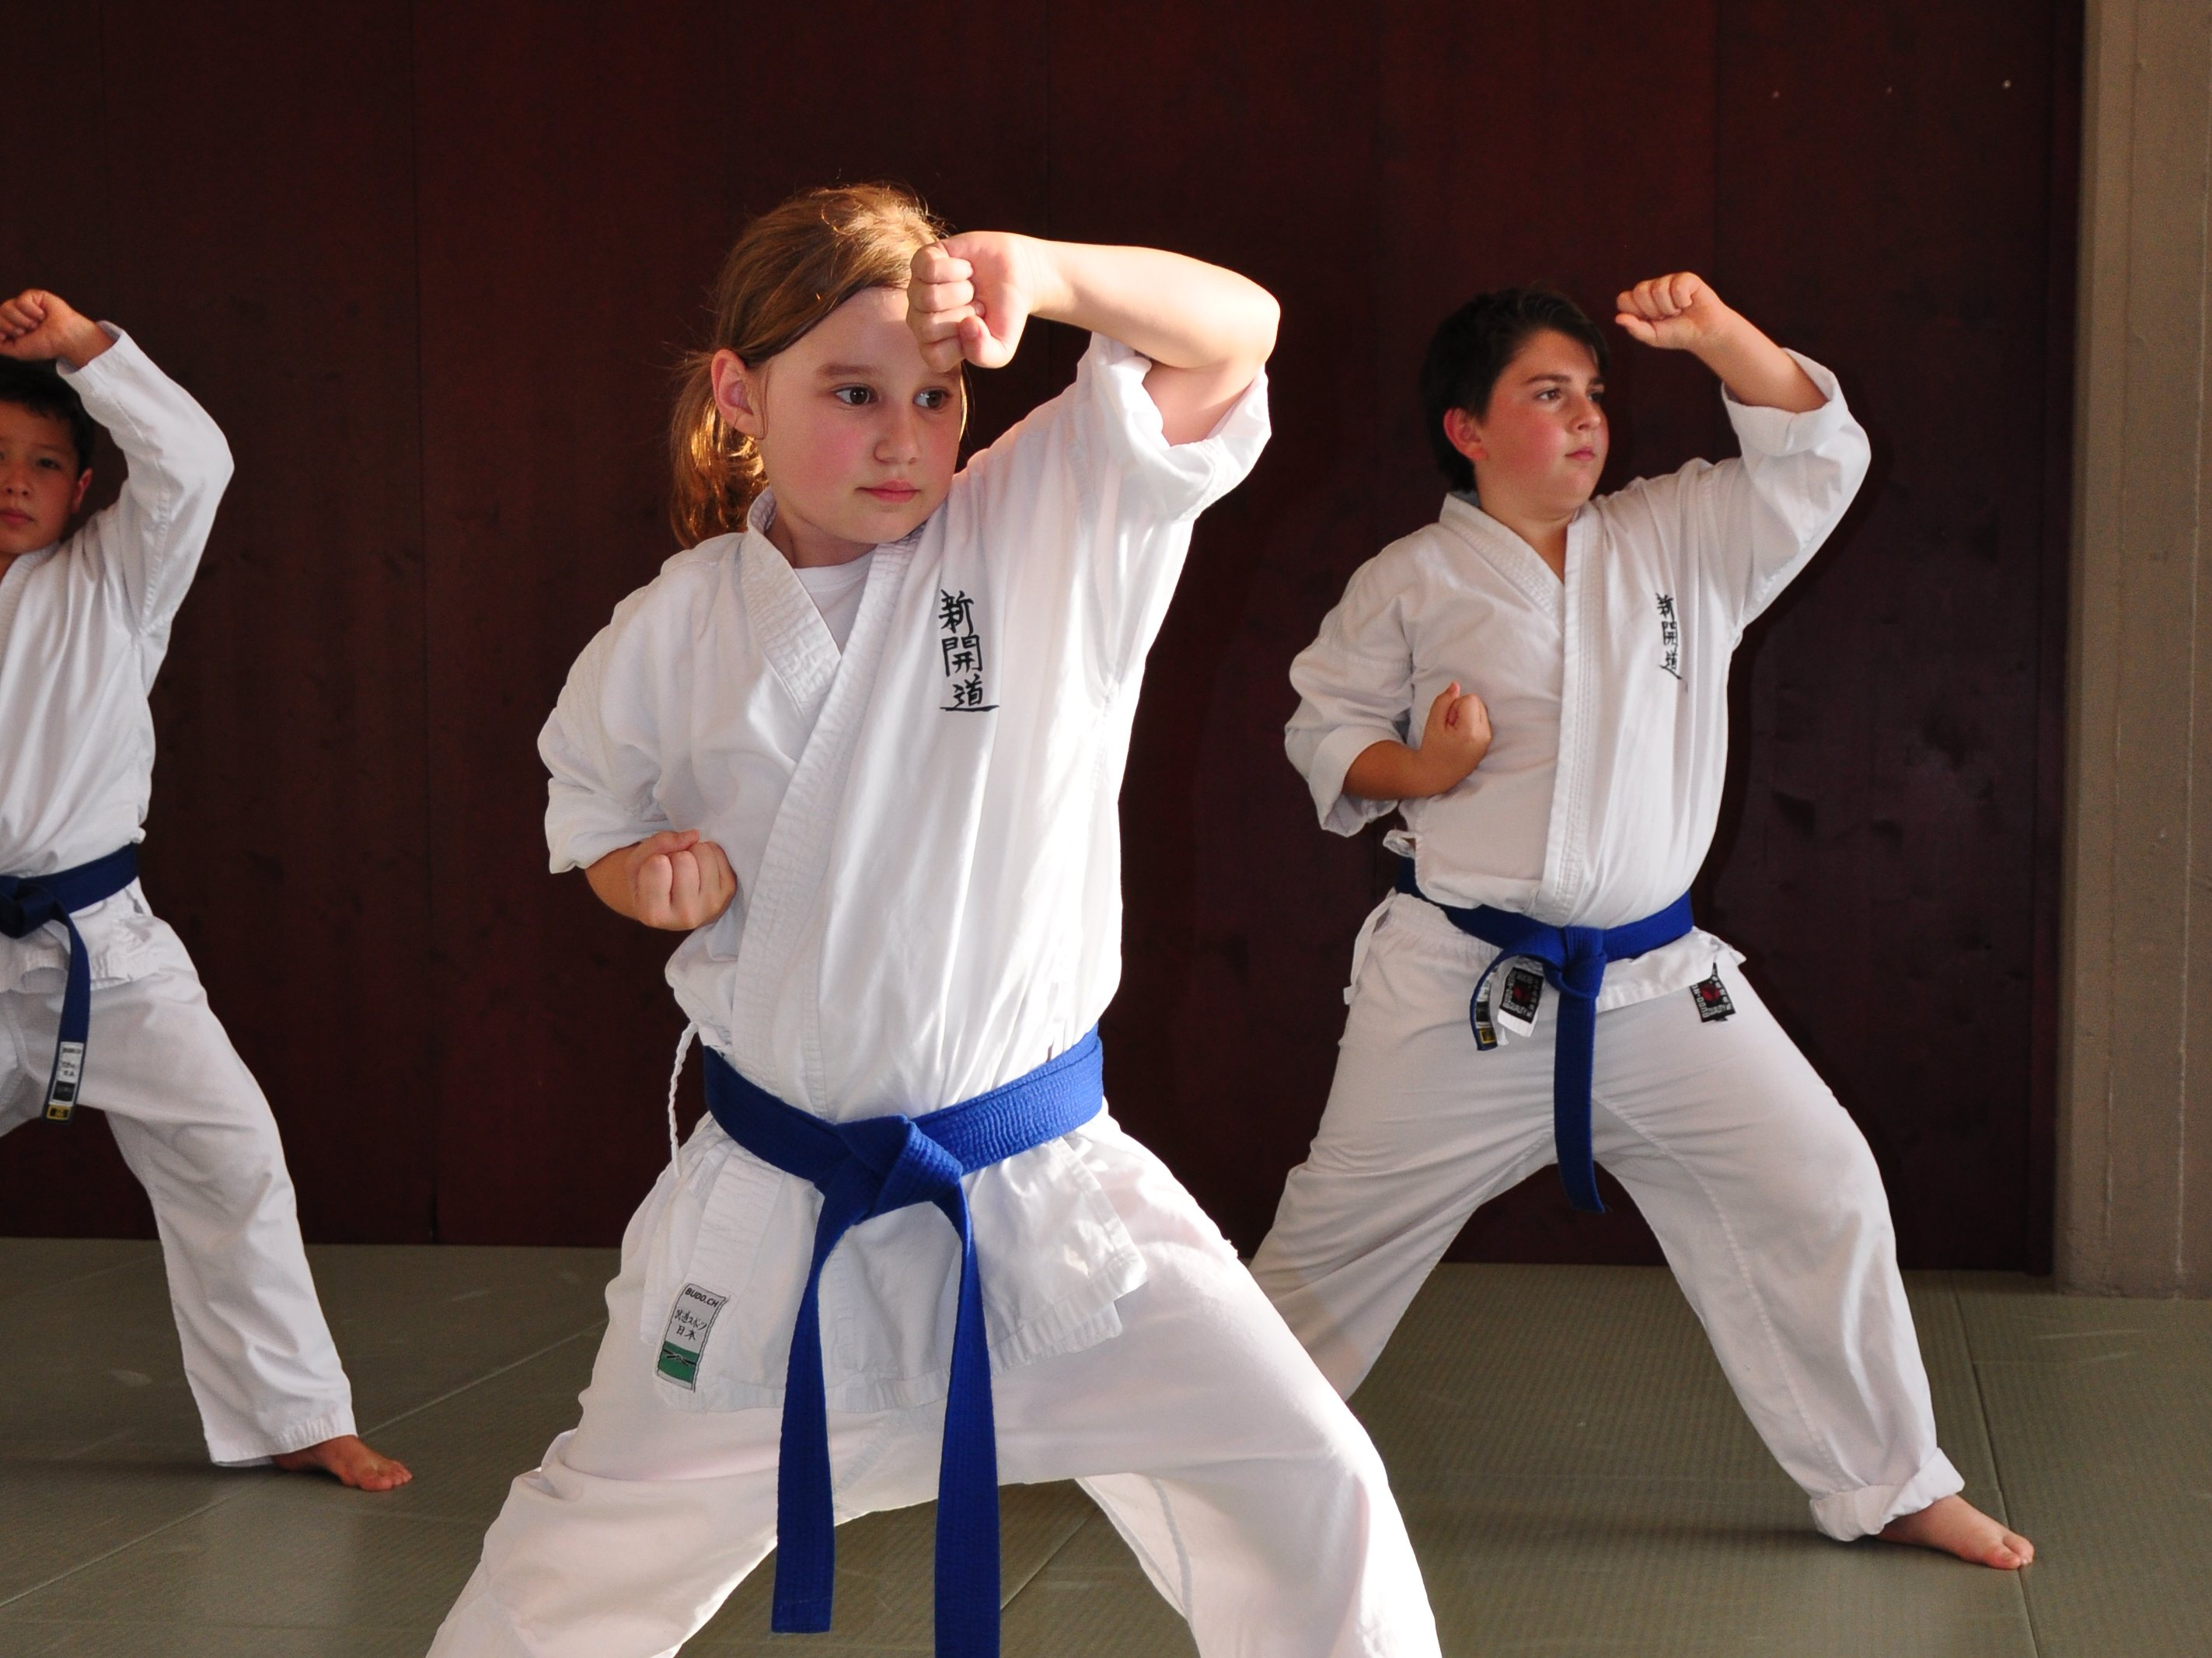 Karate Kinder Zürich